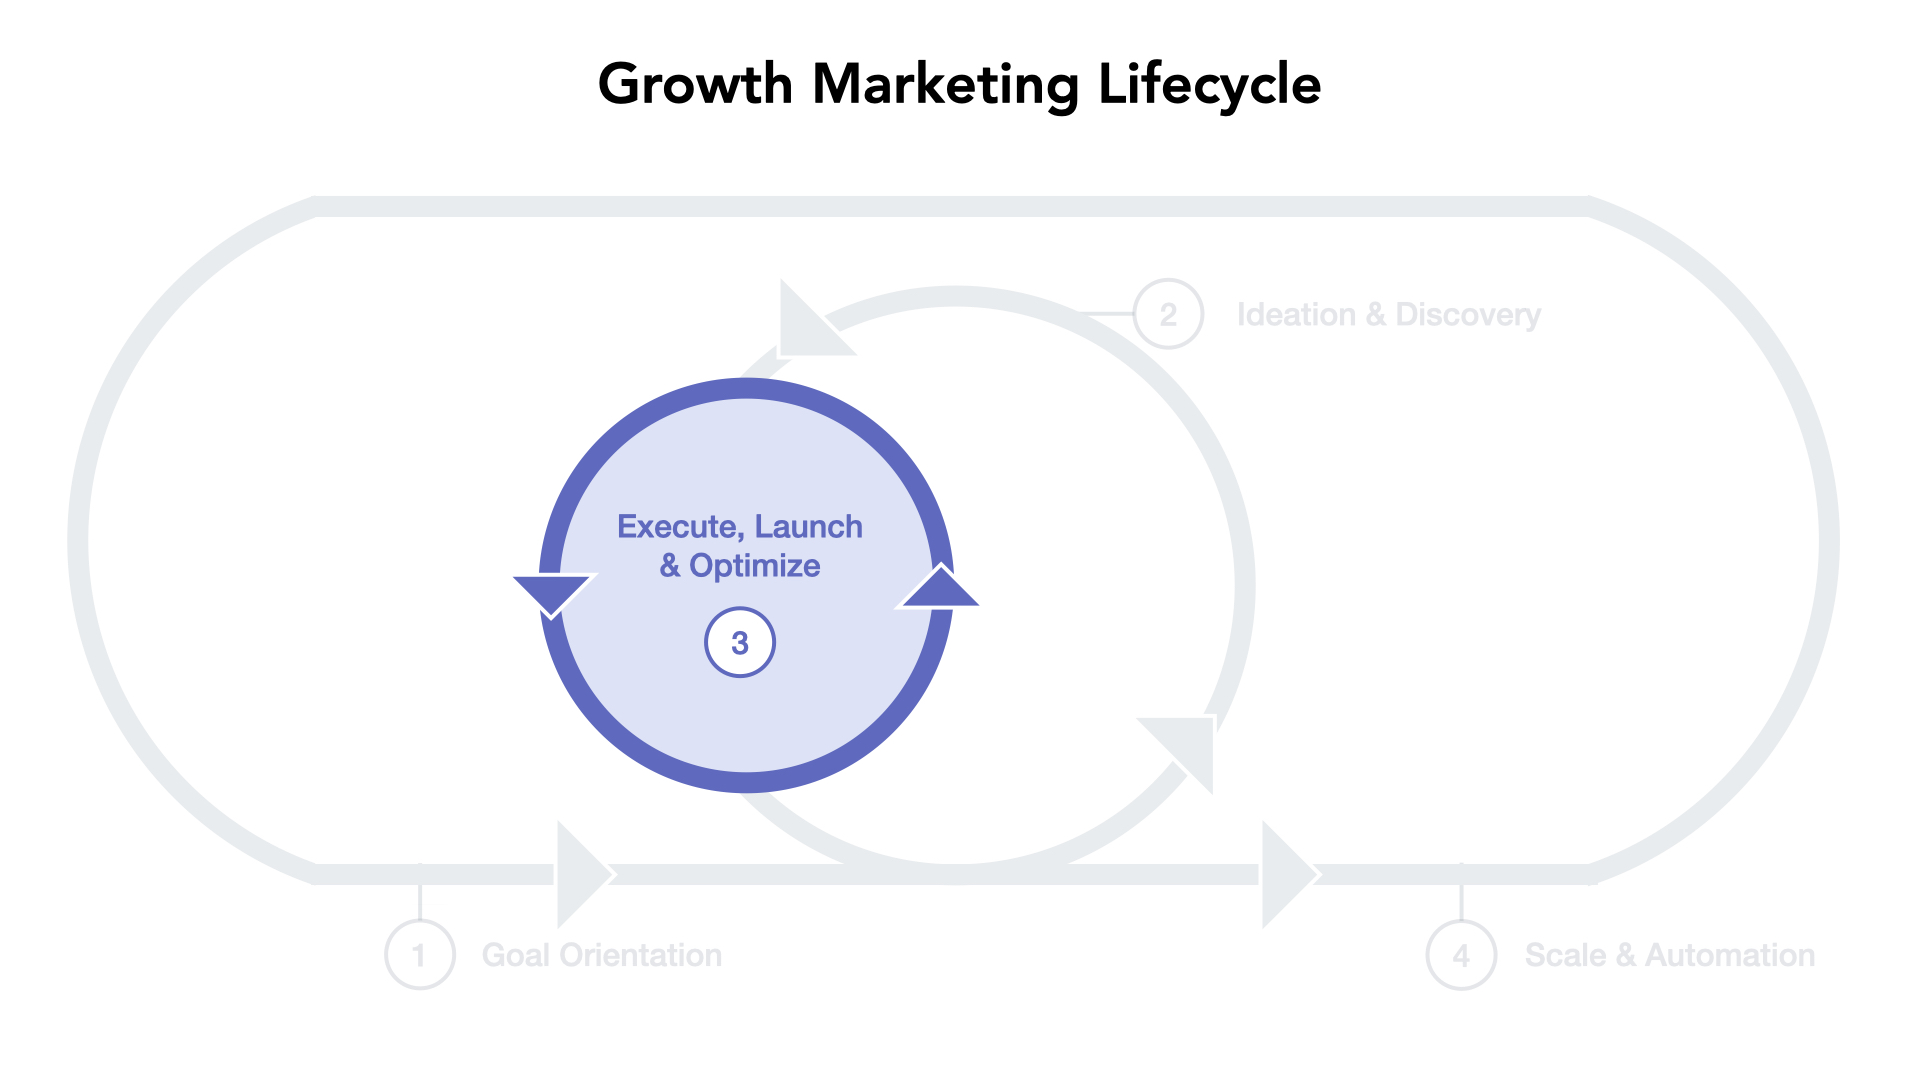 Marketing Sprint Execution: GMLC Phase 3